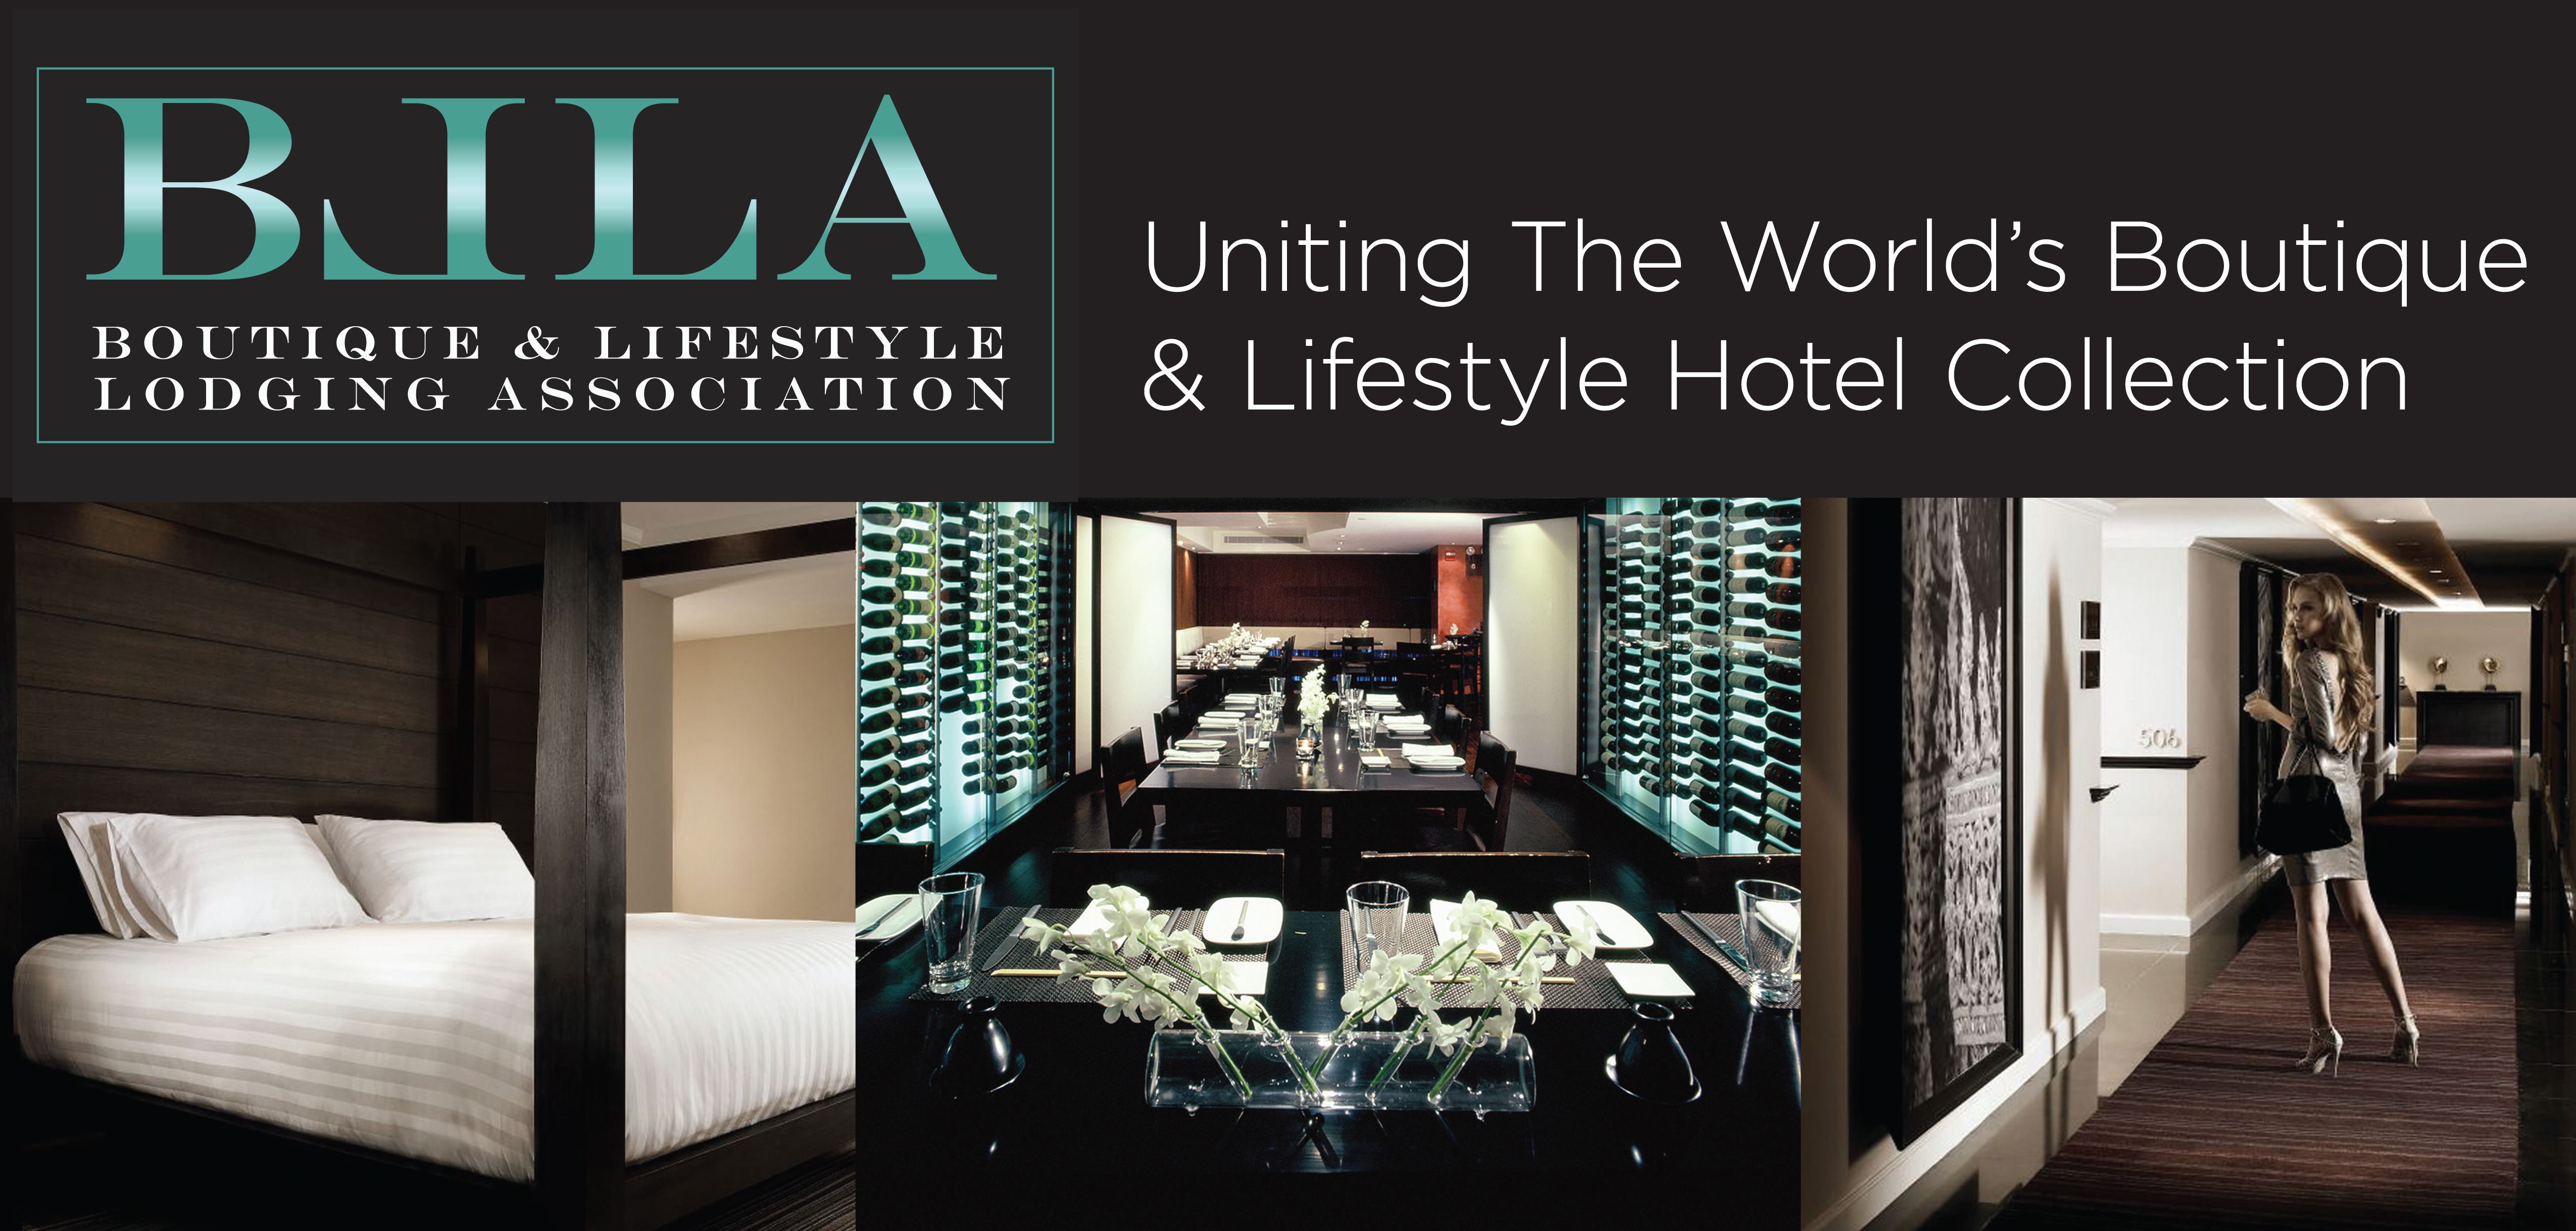 Independent hotels the boutique lifestyle lodging for Independent boutique hotels